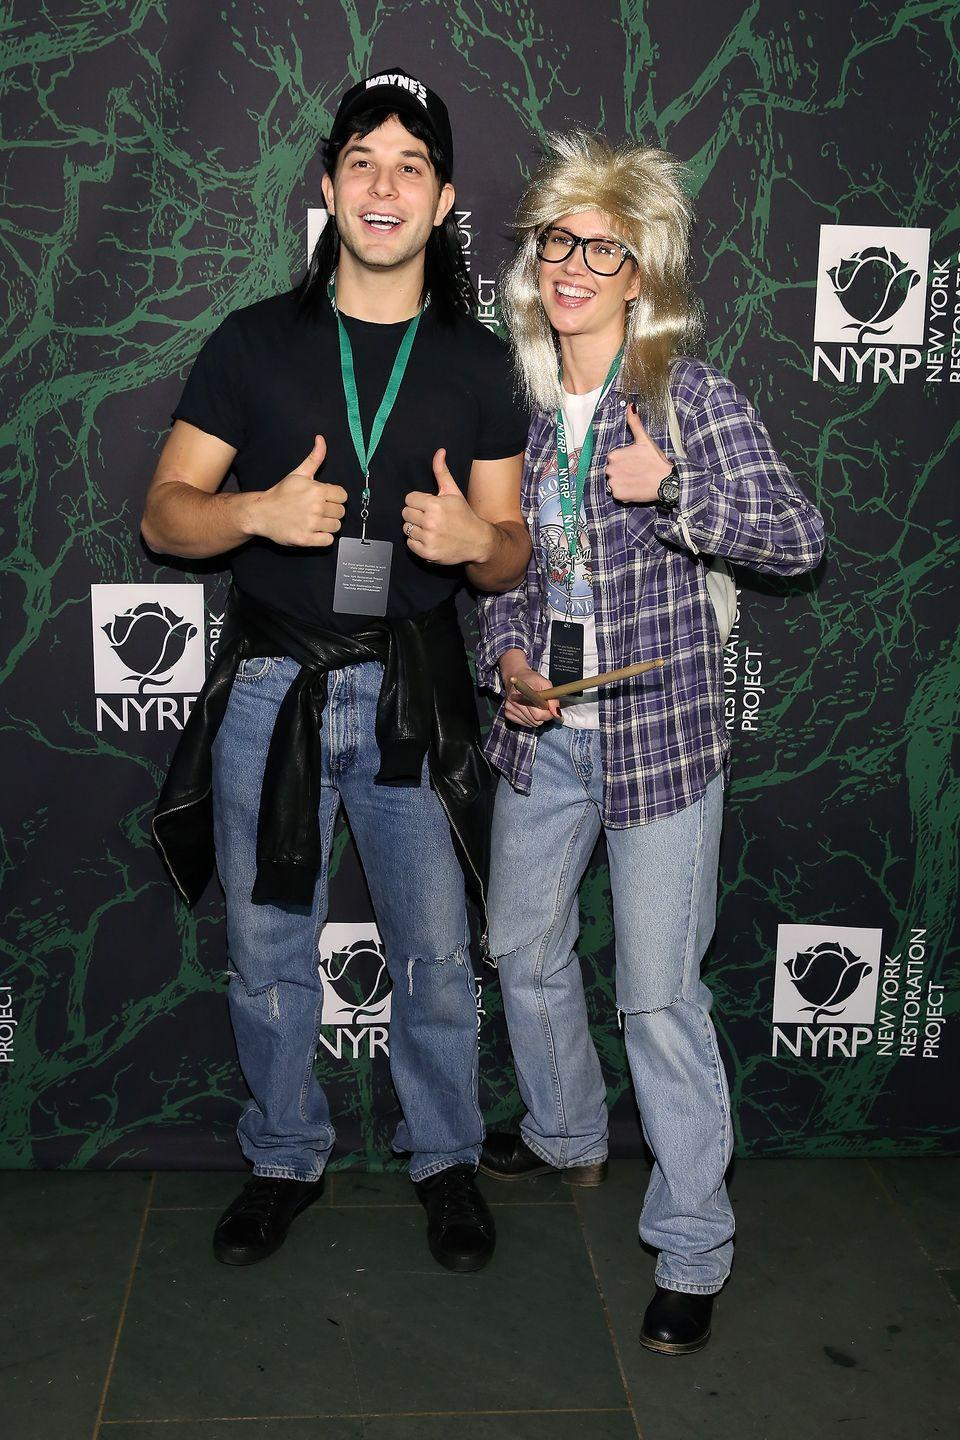 <p>Party on! The <em>Pitch Perfect </em>costars nailed their couples costume in 2017, dressing like the main characters from <em>Wayne's World</em>. </p>